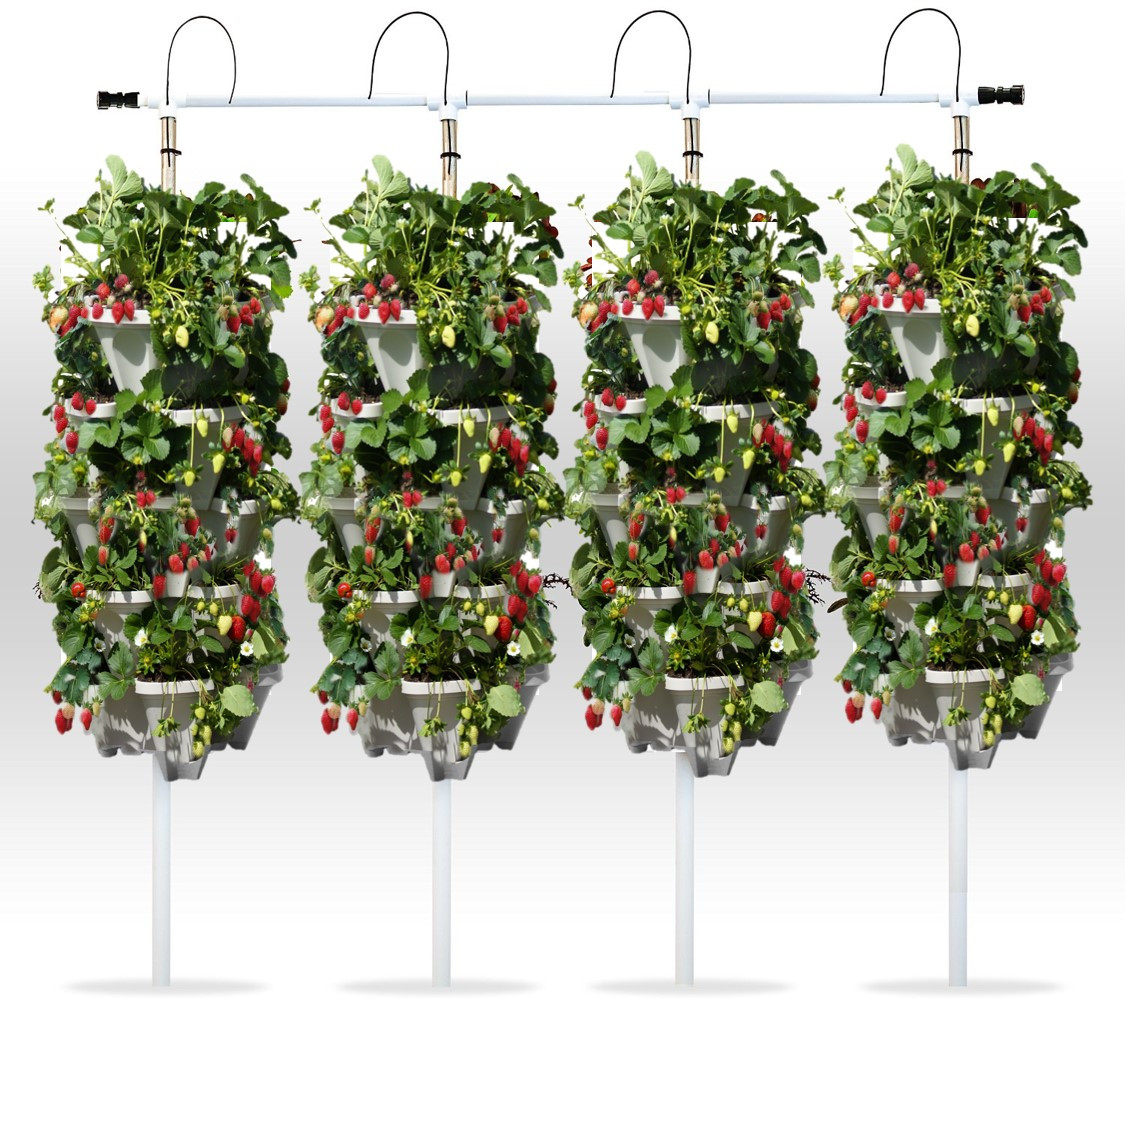 Best ideas about Hydroponic Tower Garden DIY . Save or Pin DIY Vertical Hydroponic 4 Tower Kit Now.